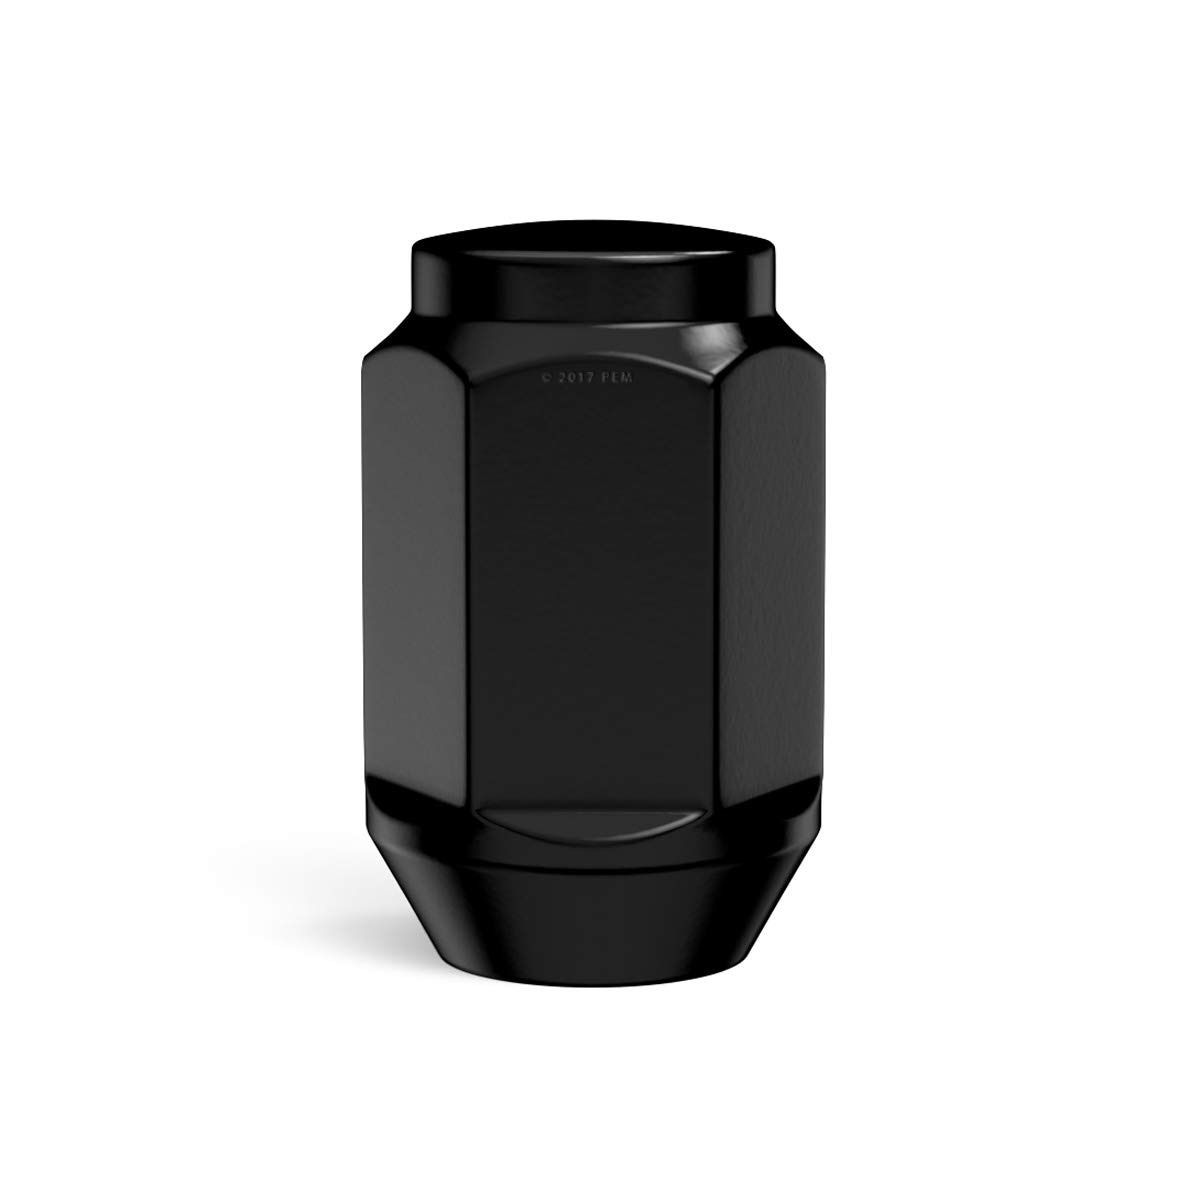 Installs with 19mm or 3//4 Socket Metric 12x1.5 Thread Conical Cone Taper Acorn Seat Closed End 1.4 Length compatible with many Chevy Buick Chrysler Dodge GMC Pontiac 4pc Black Bulge Lug Nuts